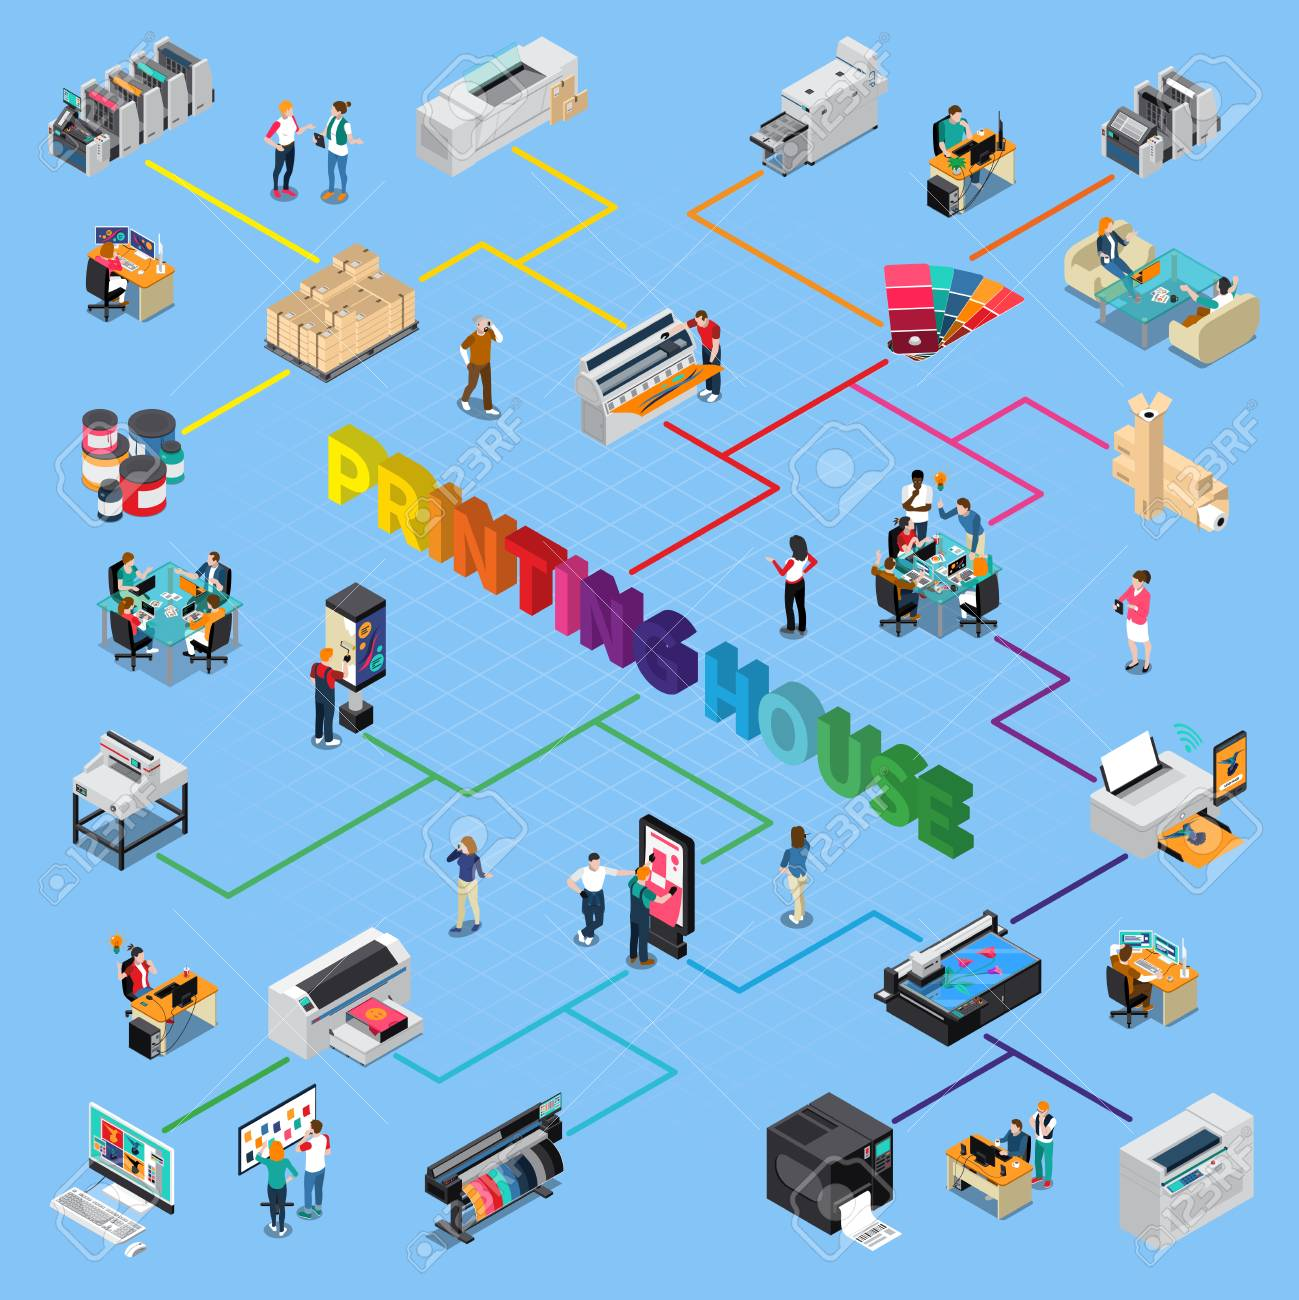 Printing house digital technology and offset printers production personal finishing designs cutting service isometric flowchart vector illlustration - 114196735